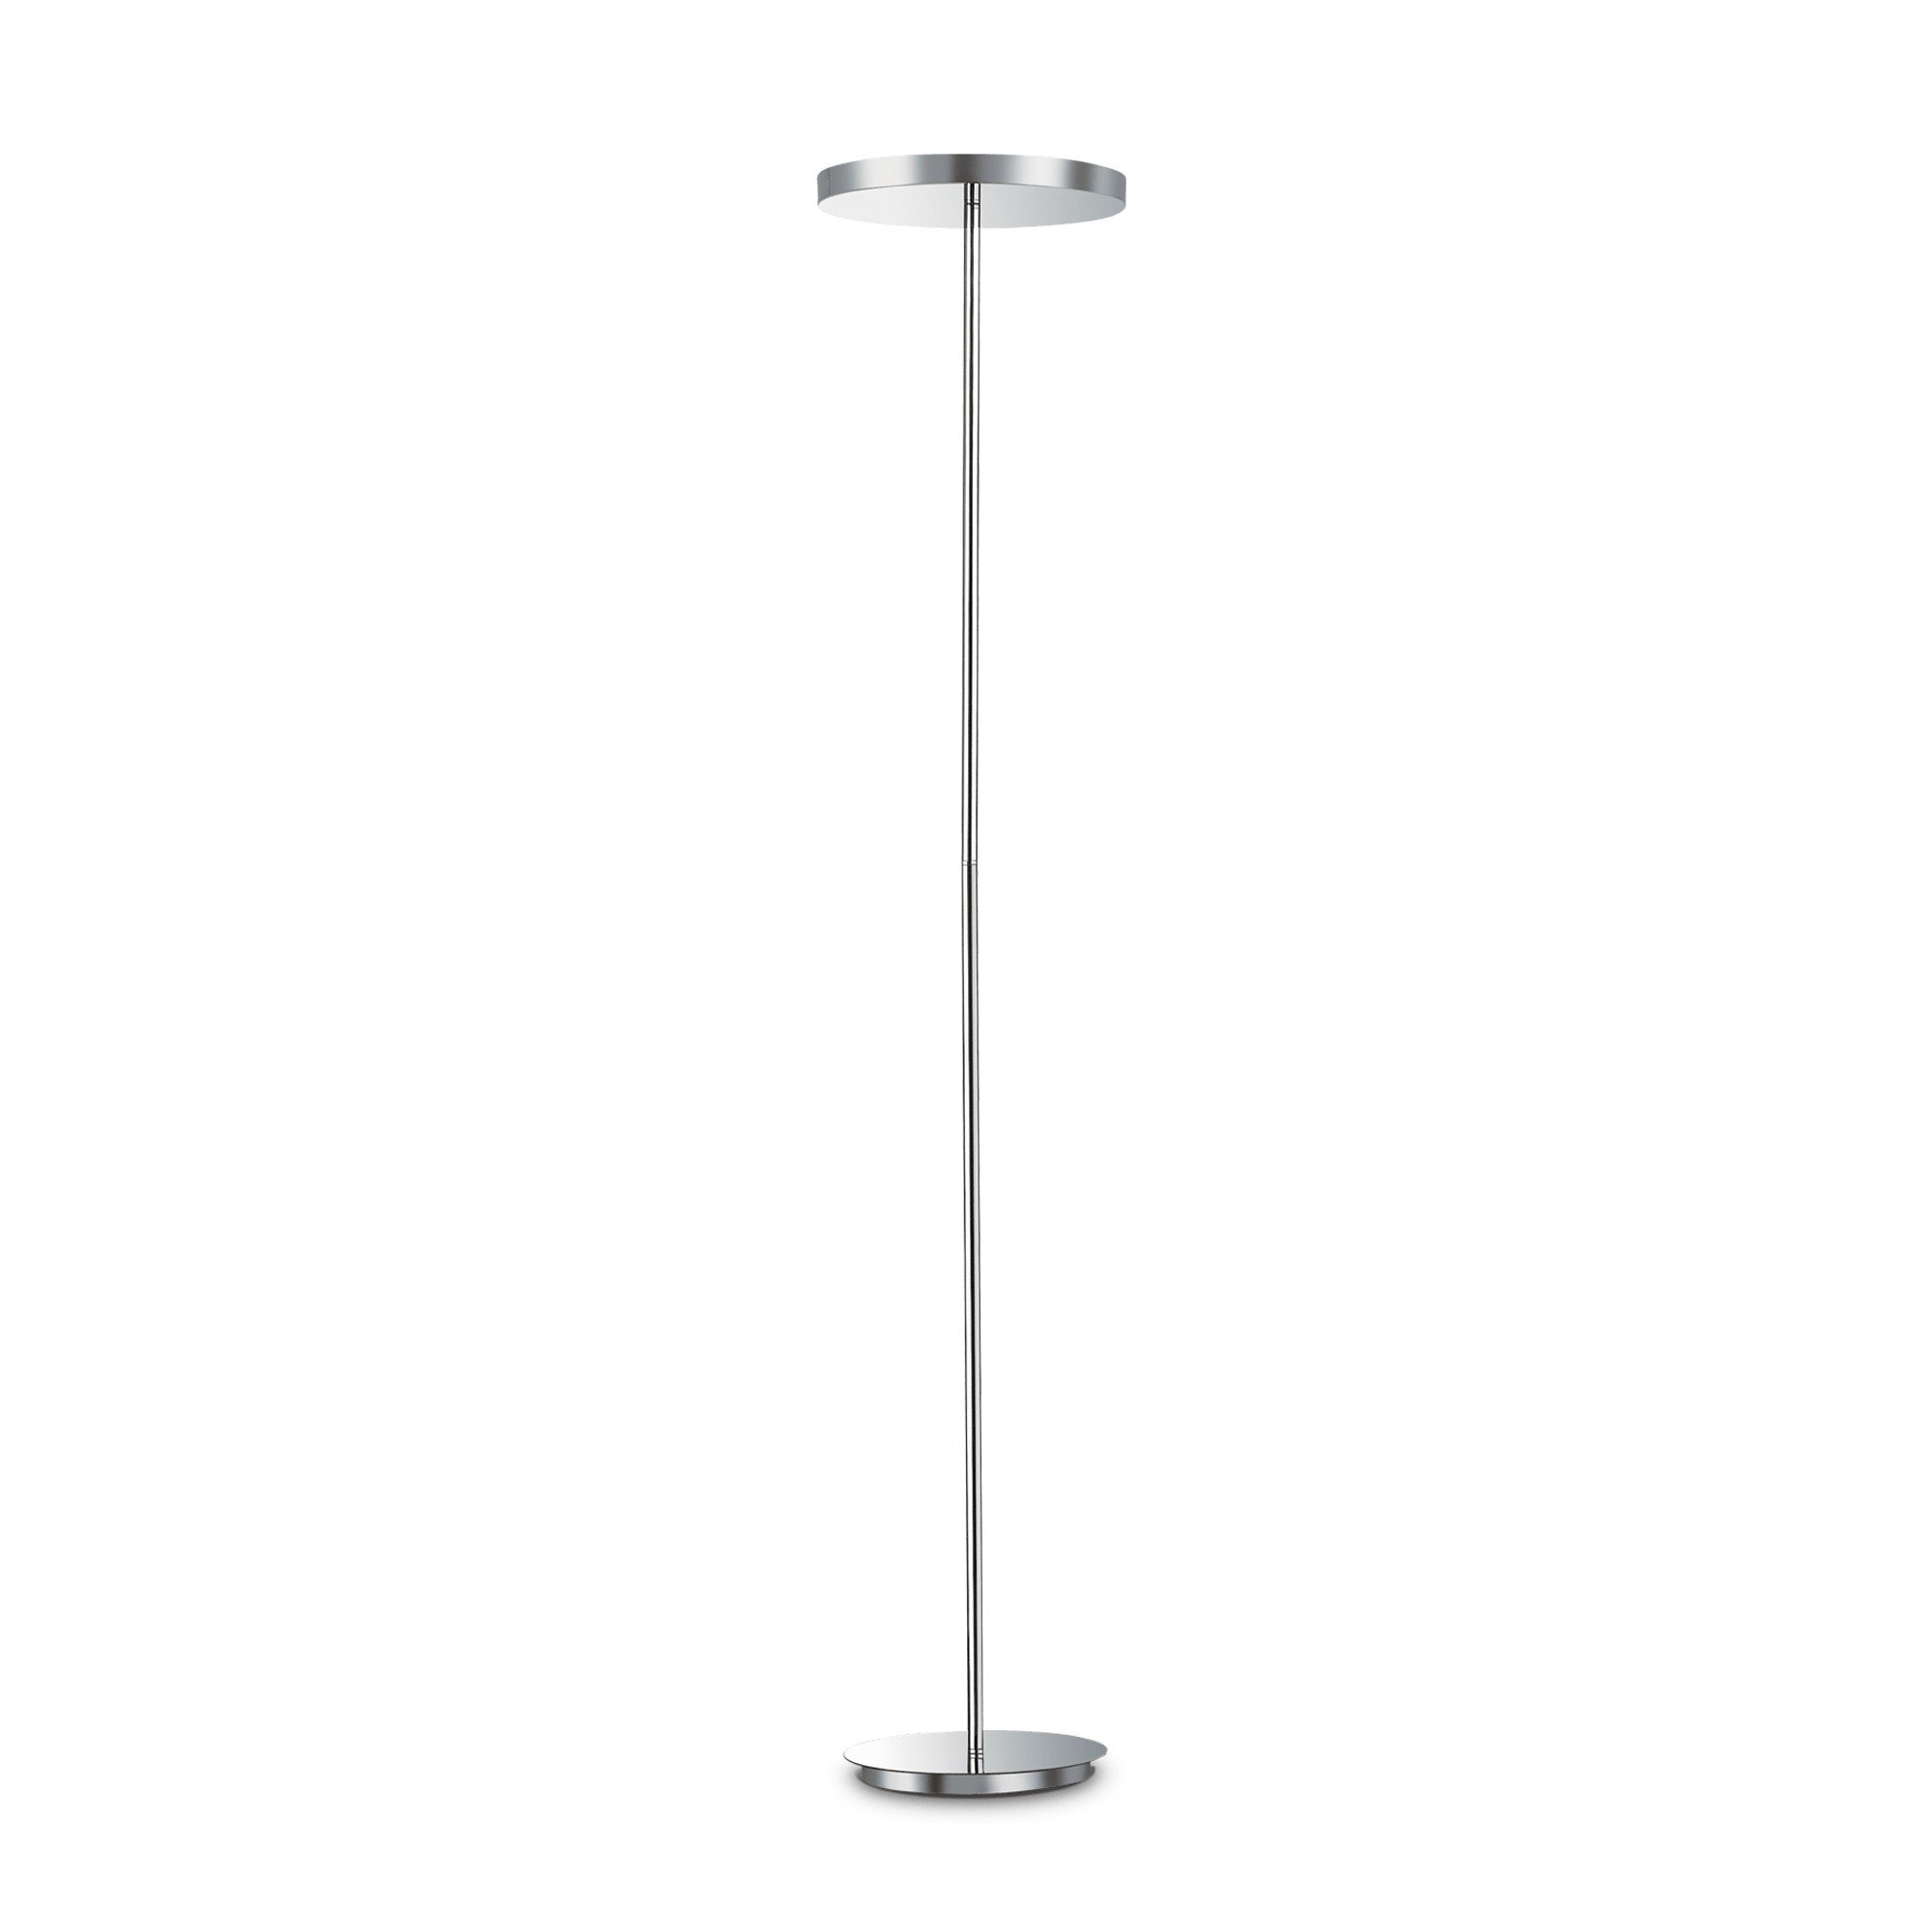 Торшер Ideal Lux Colonna PT4 Cromo (177212)